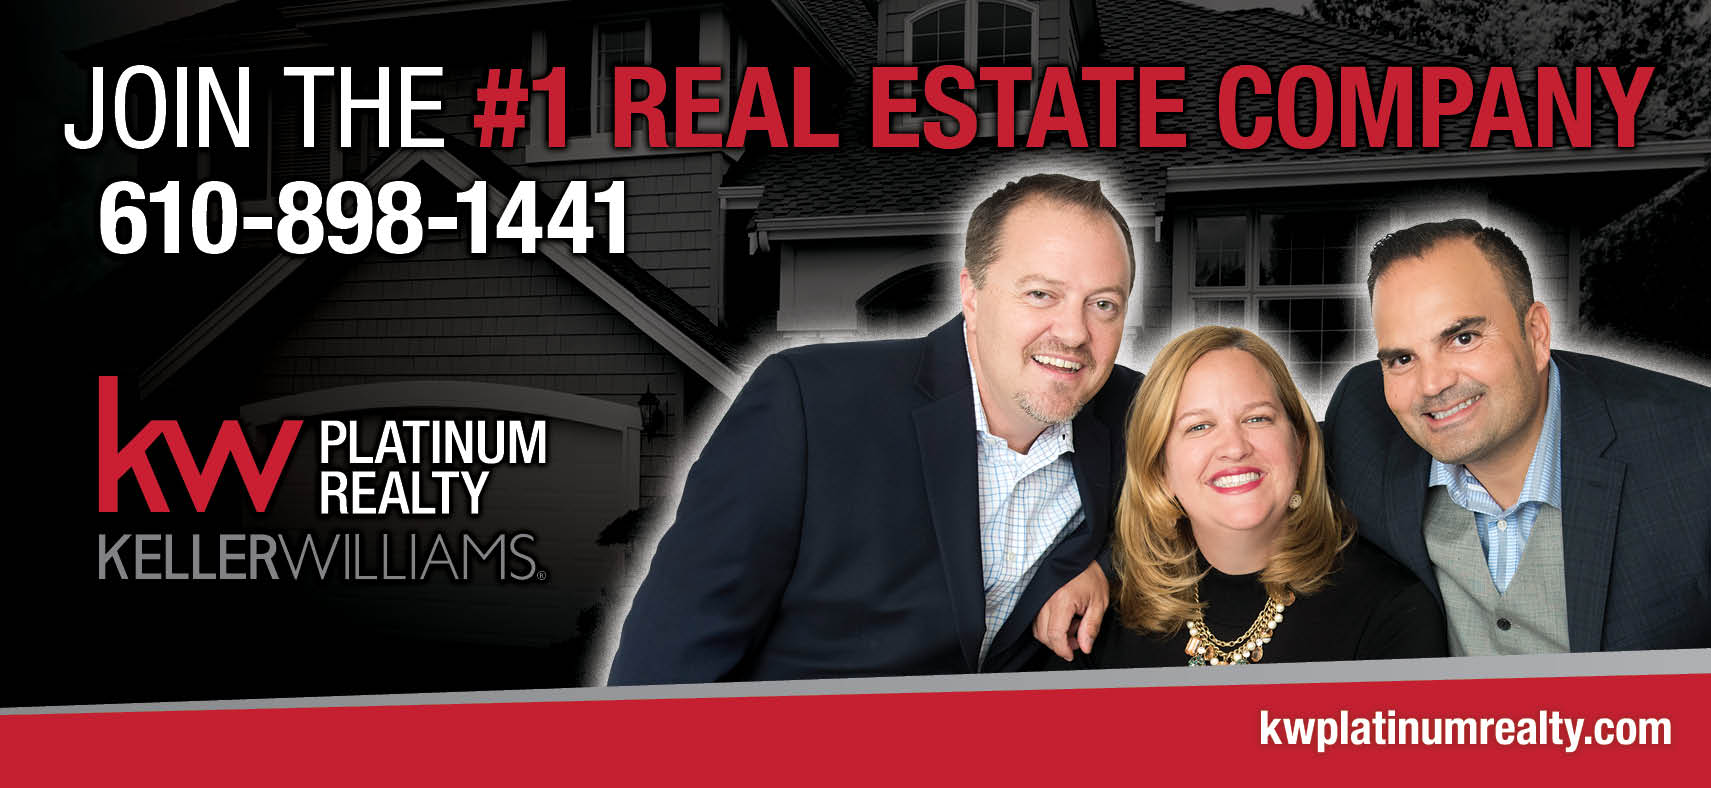 Billboard for KW Platinum Realty